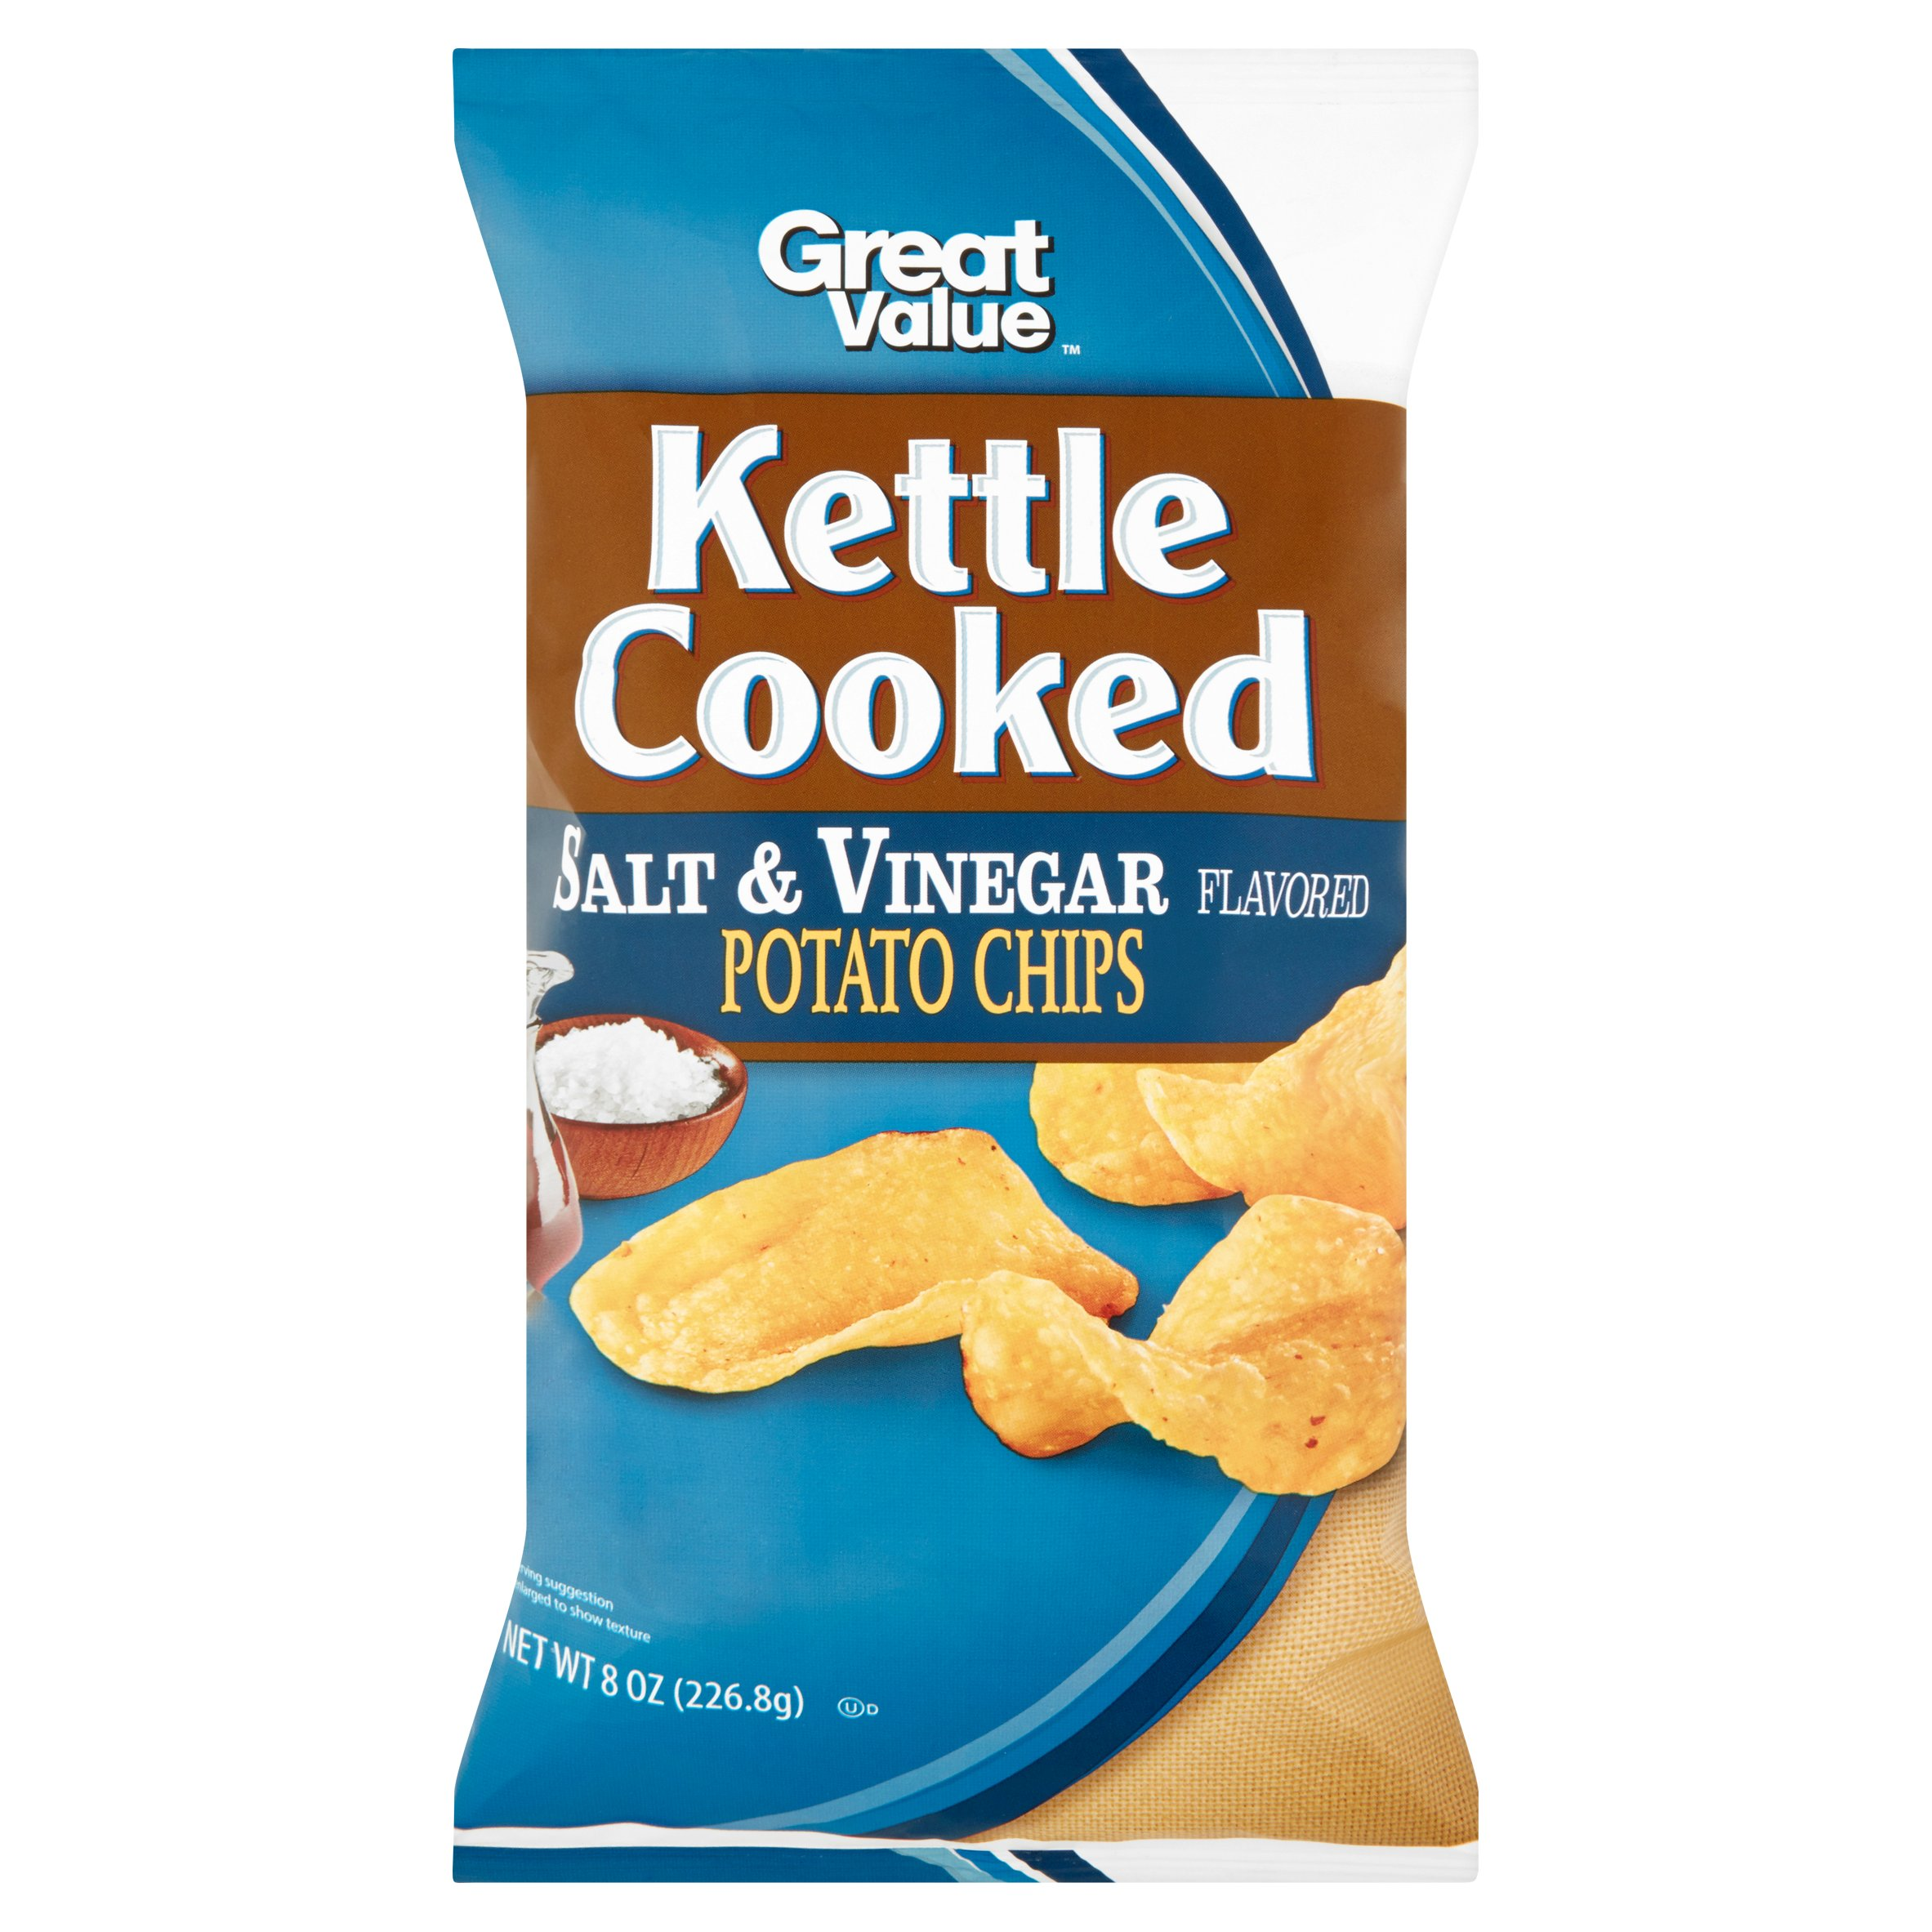 Great Value Kettle Cooked Salt & Vinegar Flavored Potato Chips, 8 oz by Wal-Mart Stores, Inc.